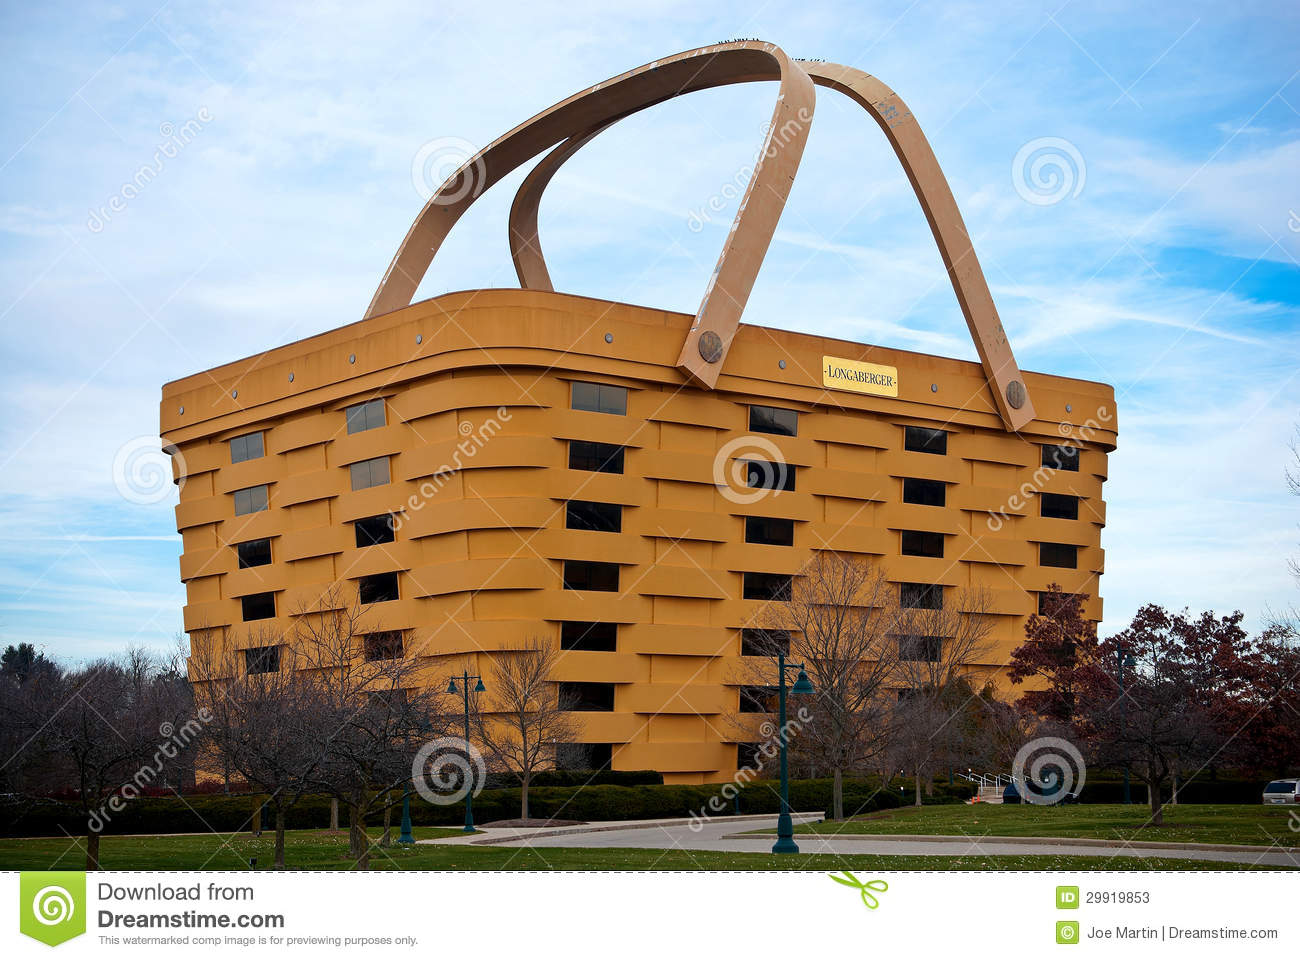 Handmade Baskets From Ohio : Basket shaped longaberger company home office editorial